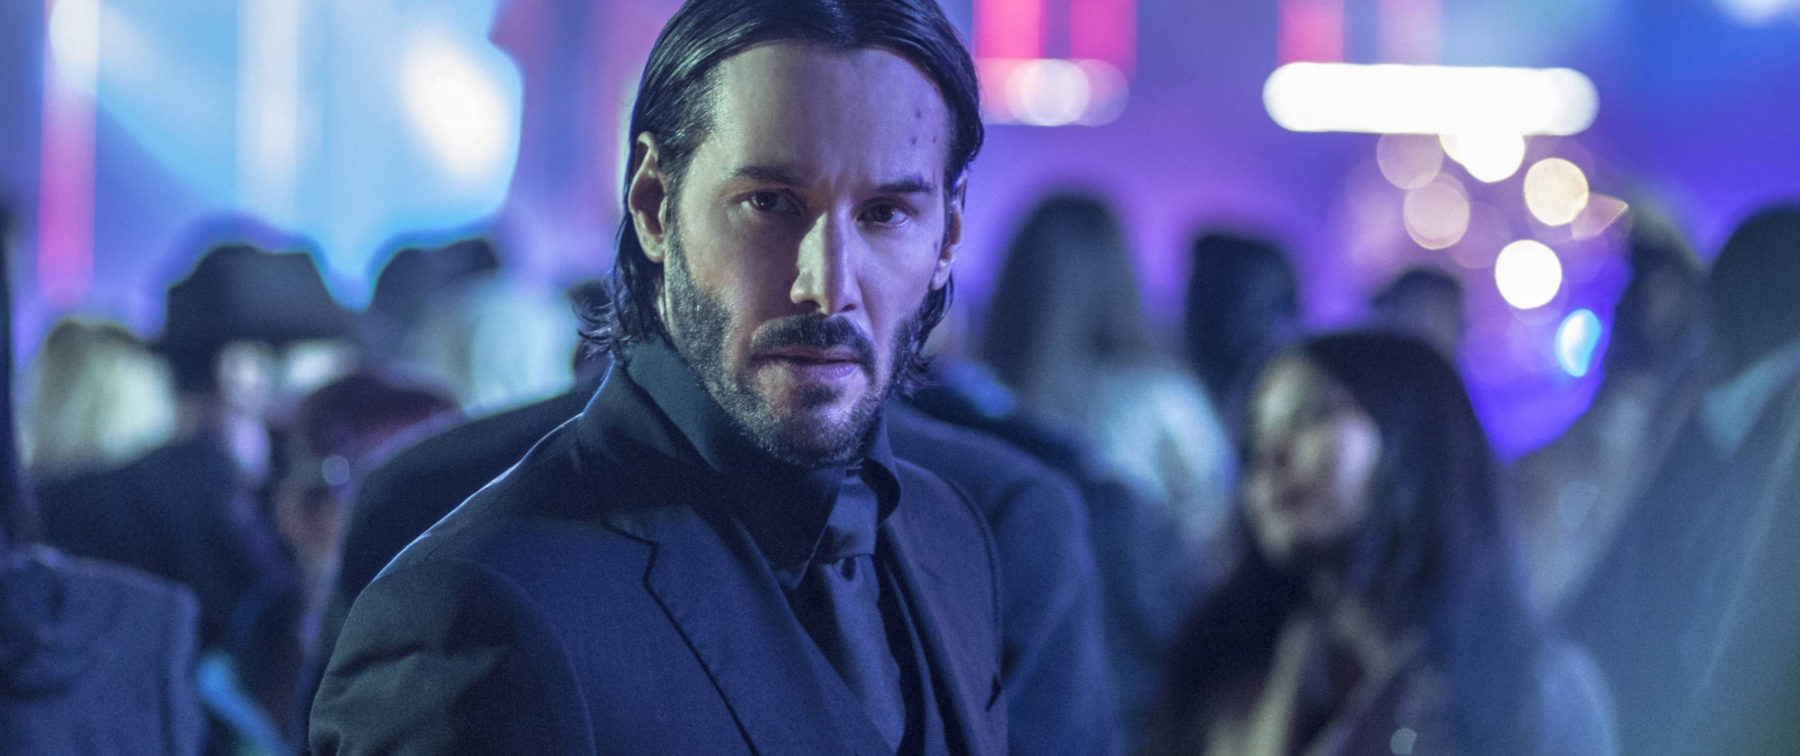 Photo: Keanu Reeves in John Wicks, directed by Chad Stahelski, written by Derek Kolstad.